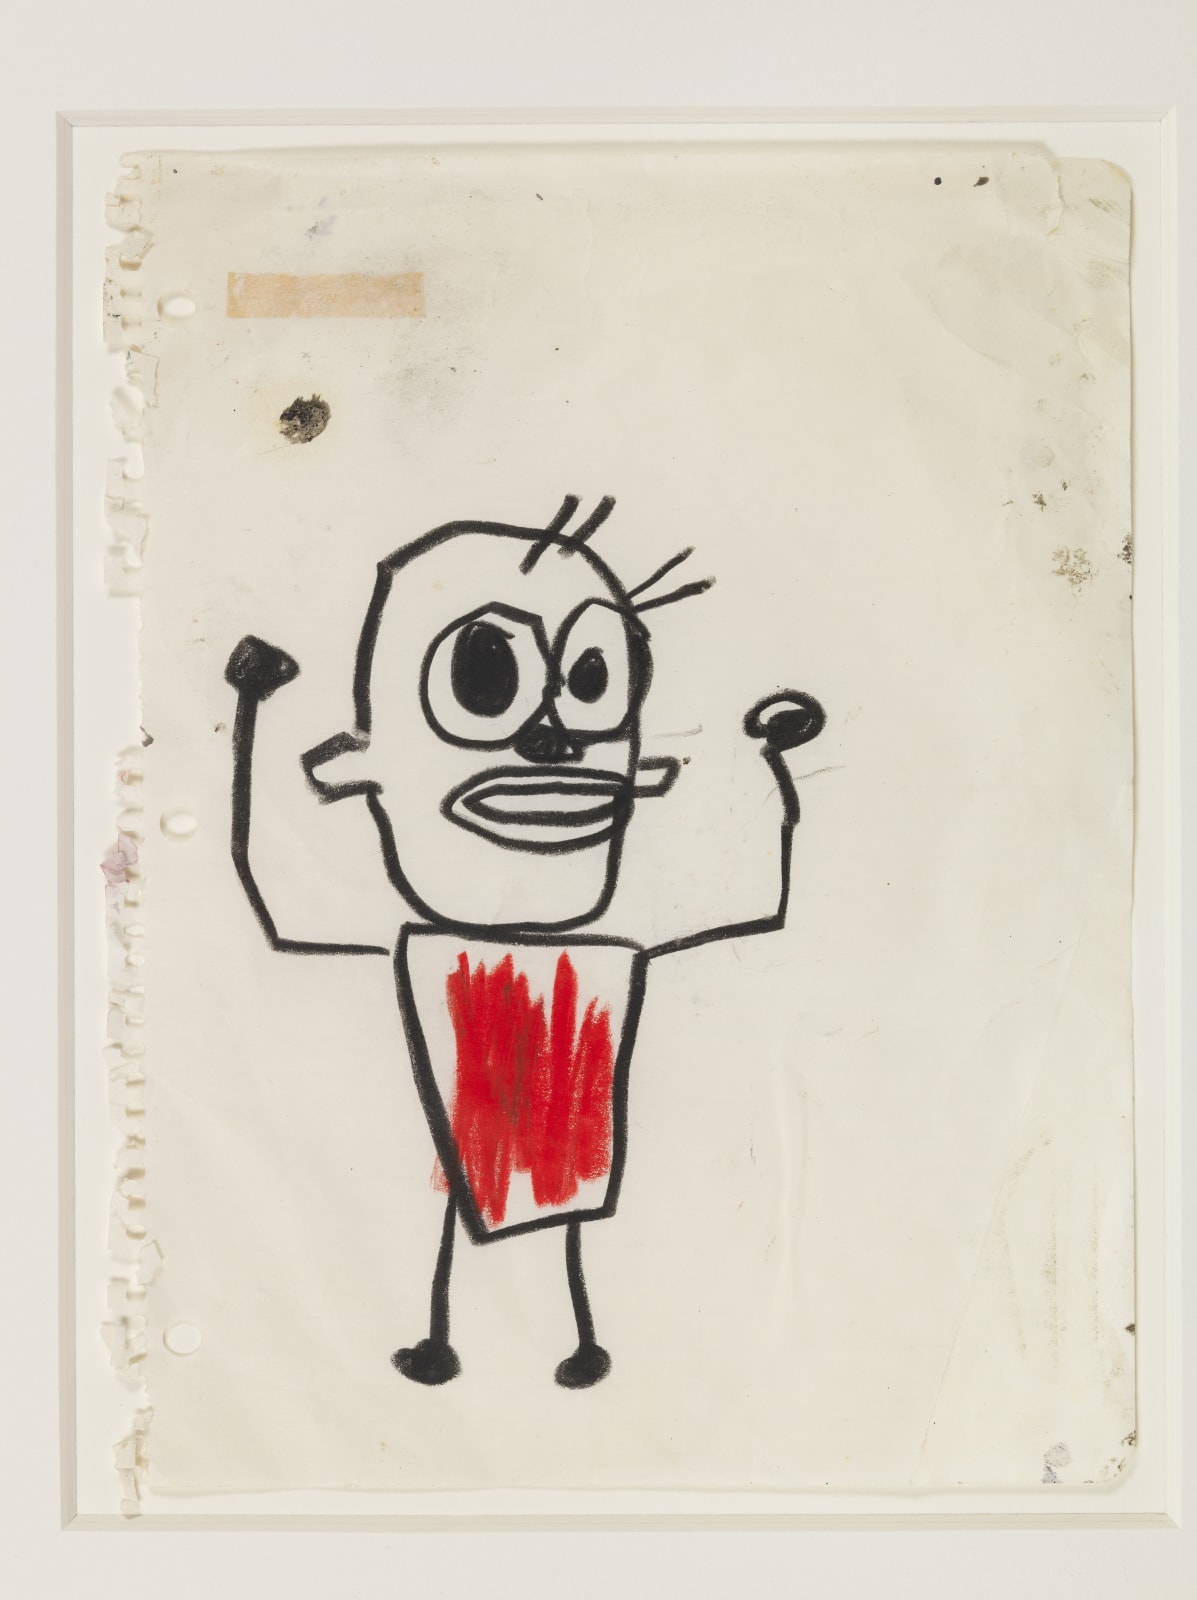 Jean-Michel Basquiat Untitled (3 drawings), 1982 Crayon on Notebook Paper 27.9 x 21.5 cm